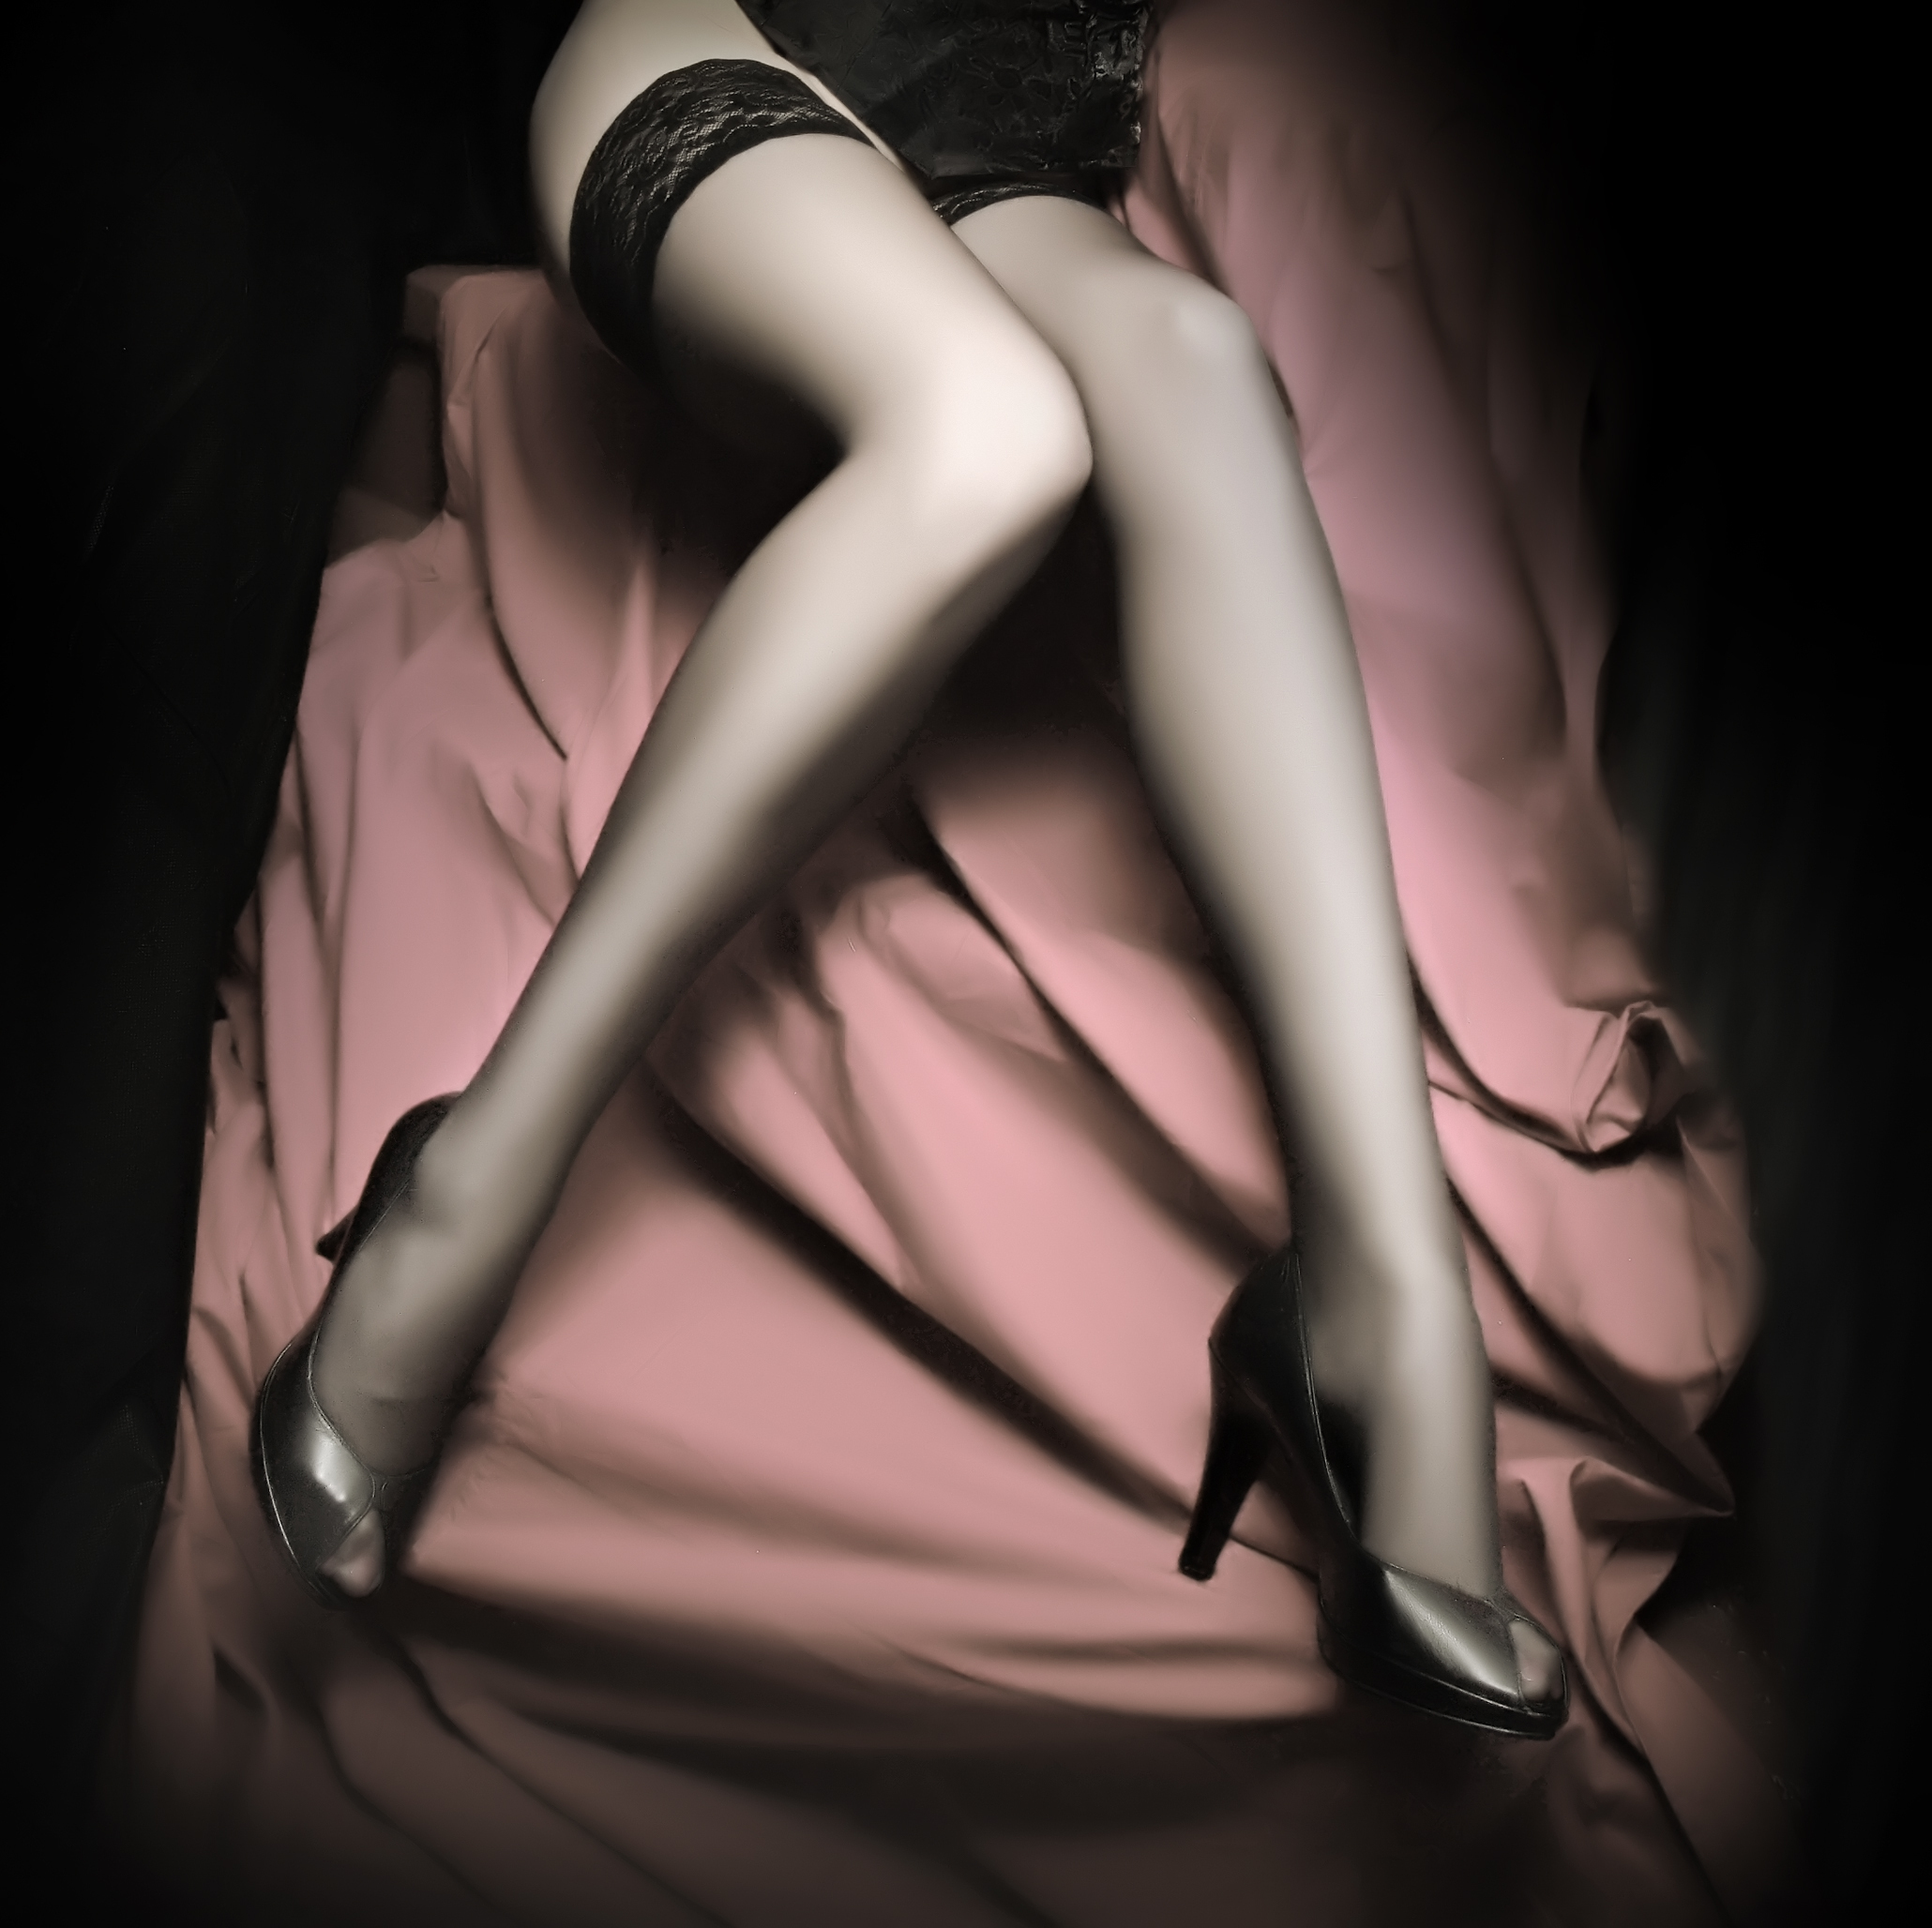 womans-legs-with-black-hose.jpg